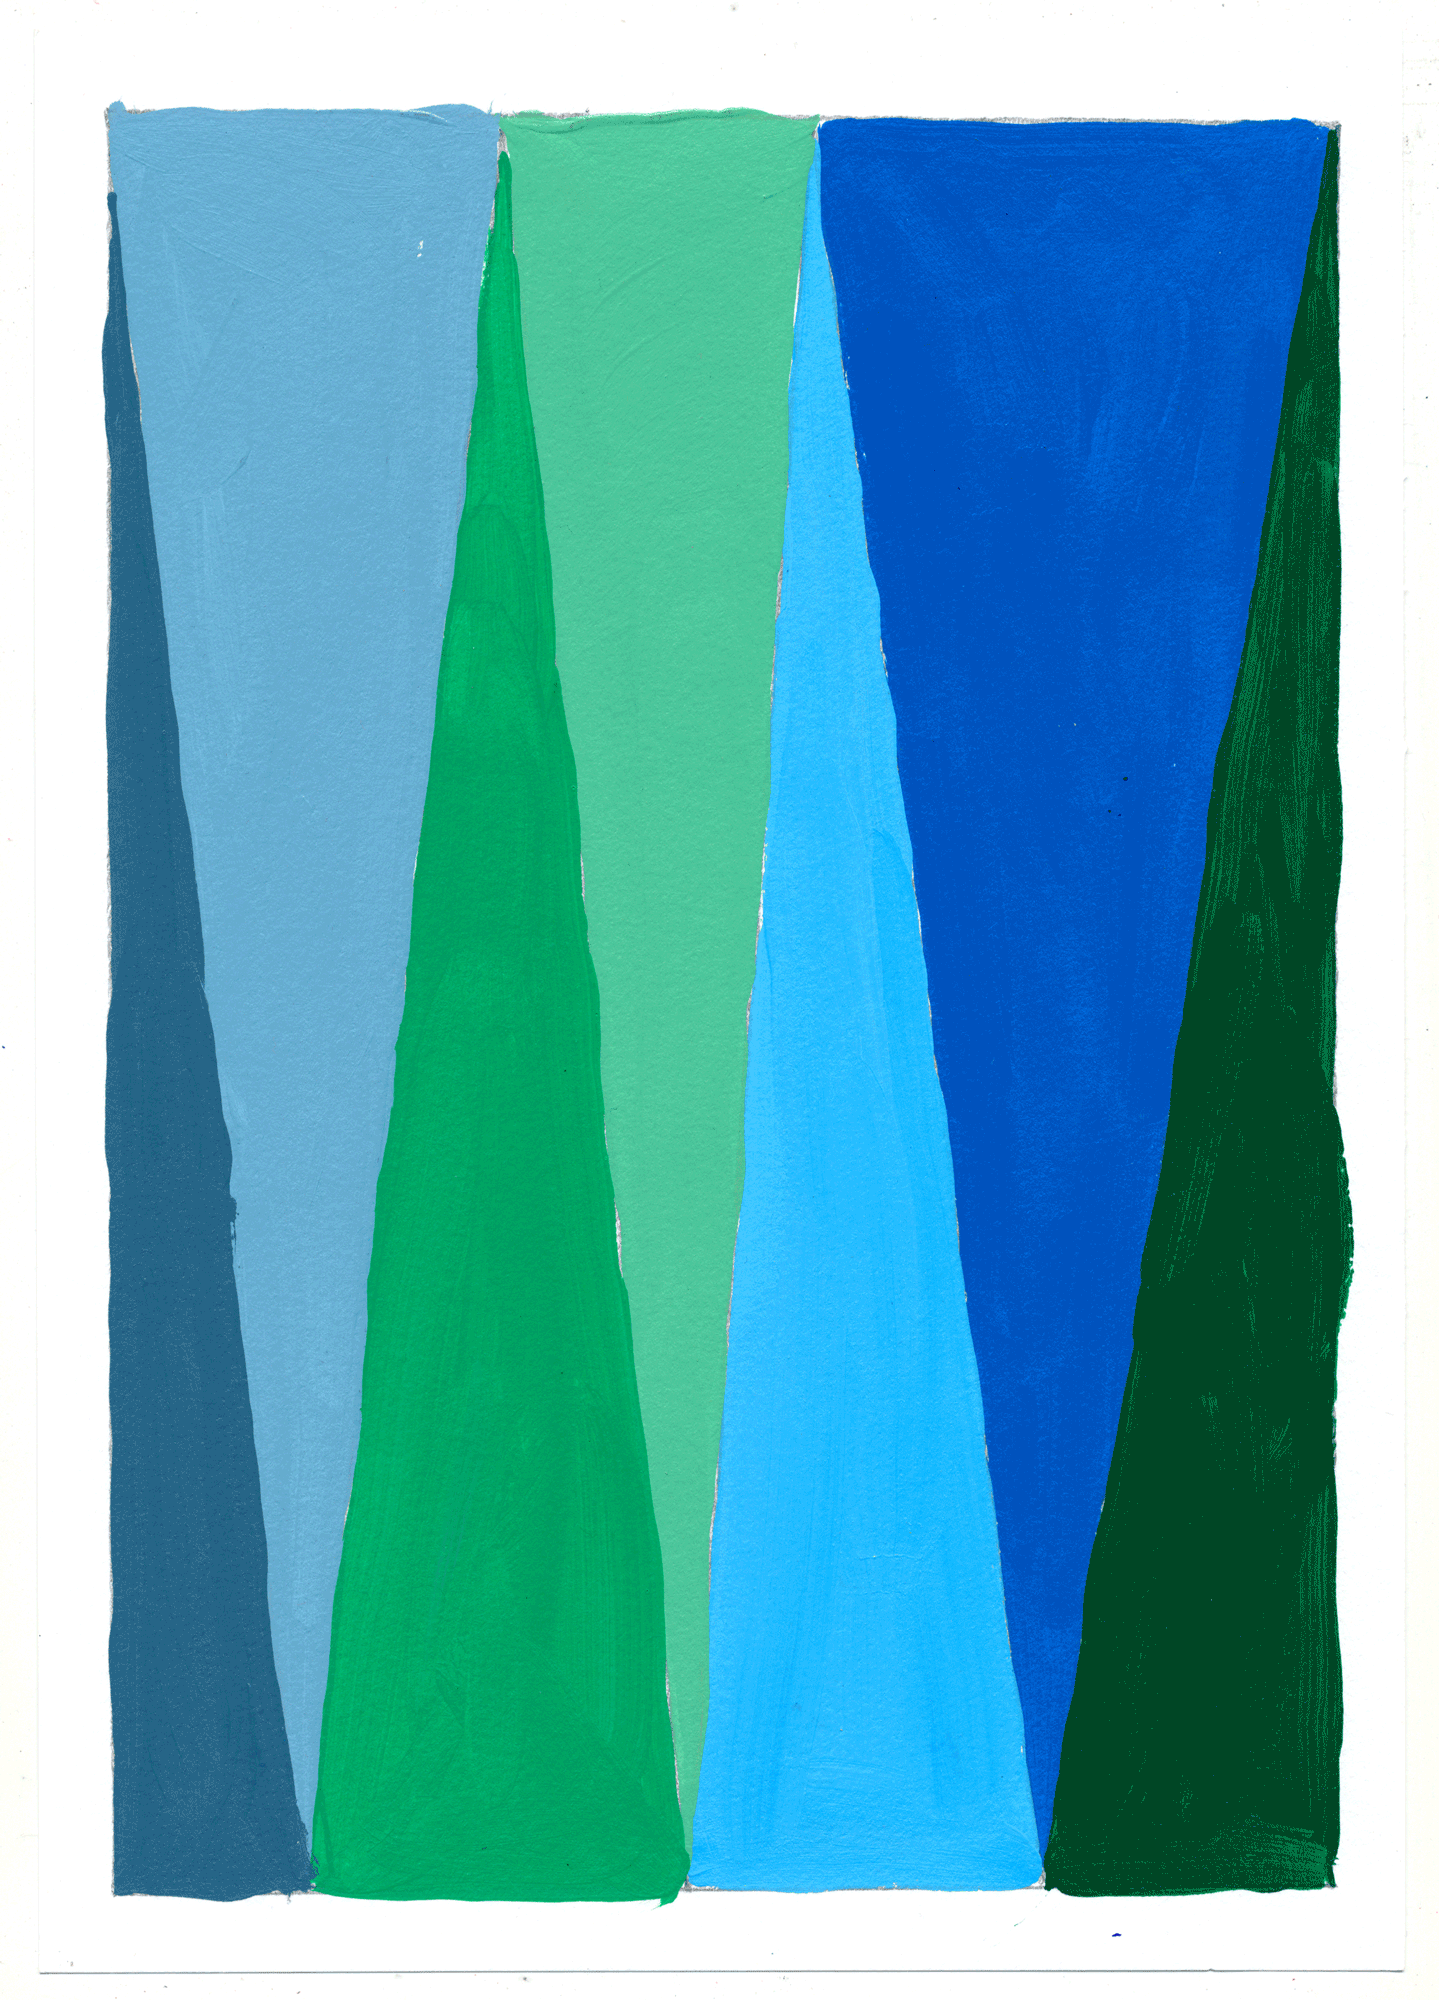 "NY17#28 10"" X 7"", acrylic on paper, 2017  available at Etsy   again with color studies! 3 sets of 3. using a primary color & its' complement to create subtle variations & muted colors."